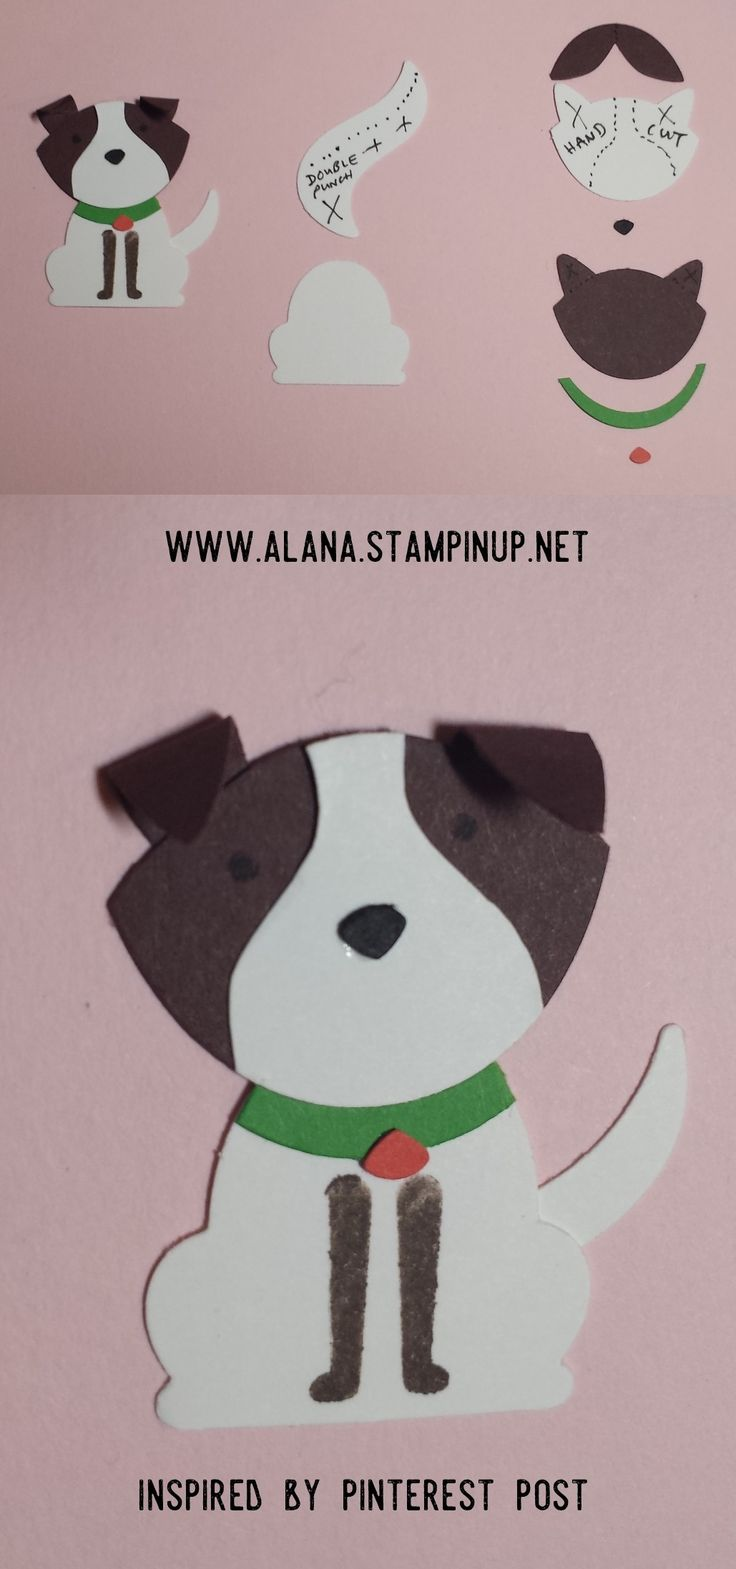 Dog No.1 Punch Art. Using Foxy Friends Stamp Set and Foxy Builder Punch from Stampin' Up!